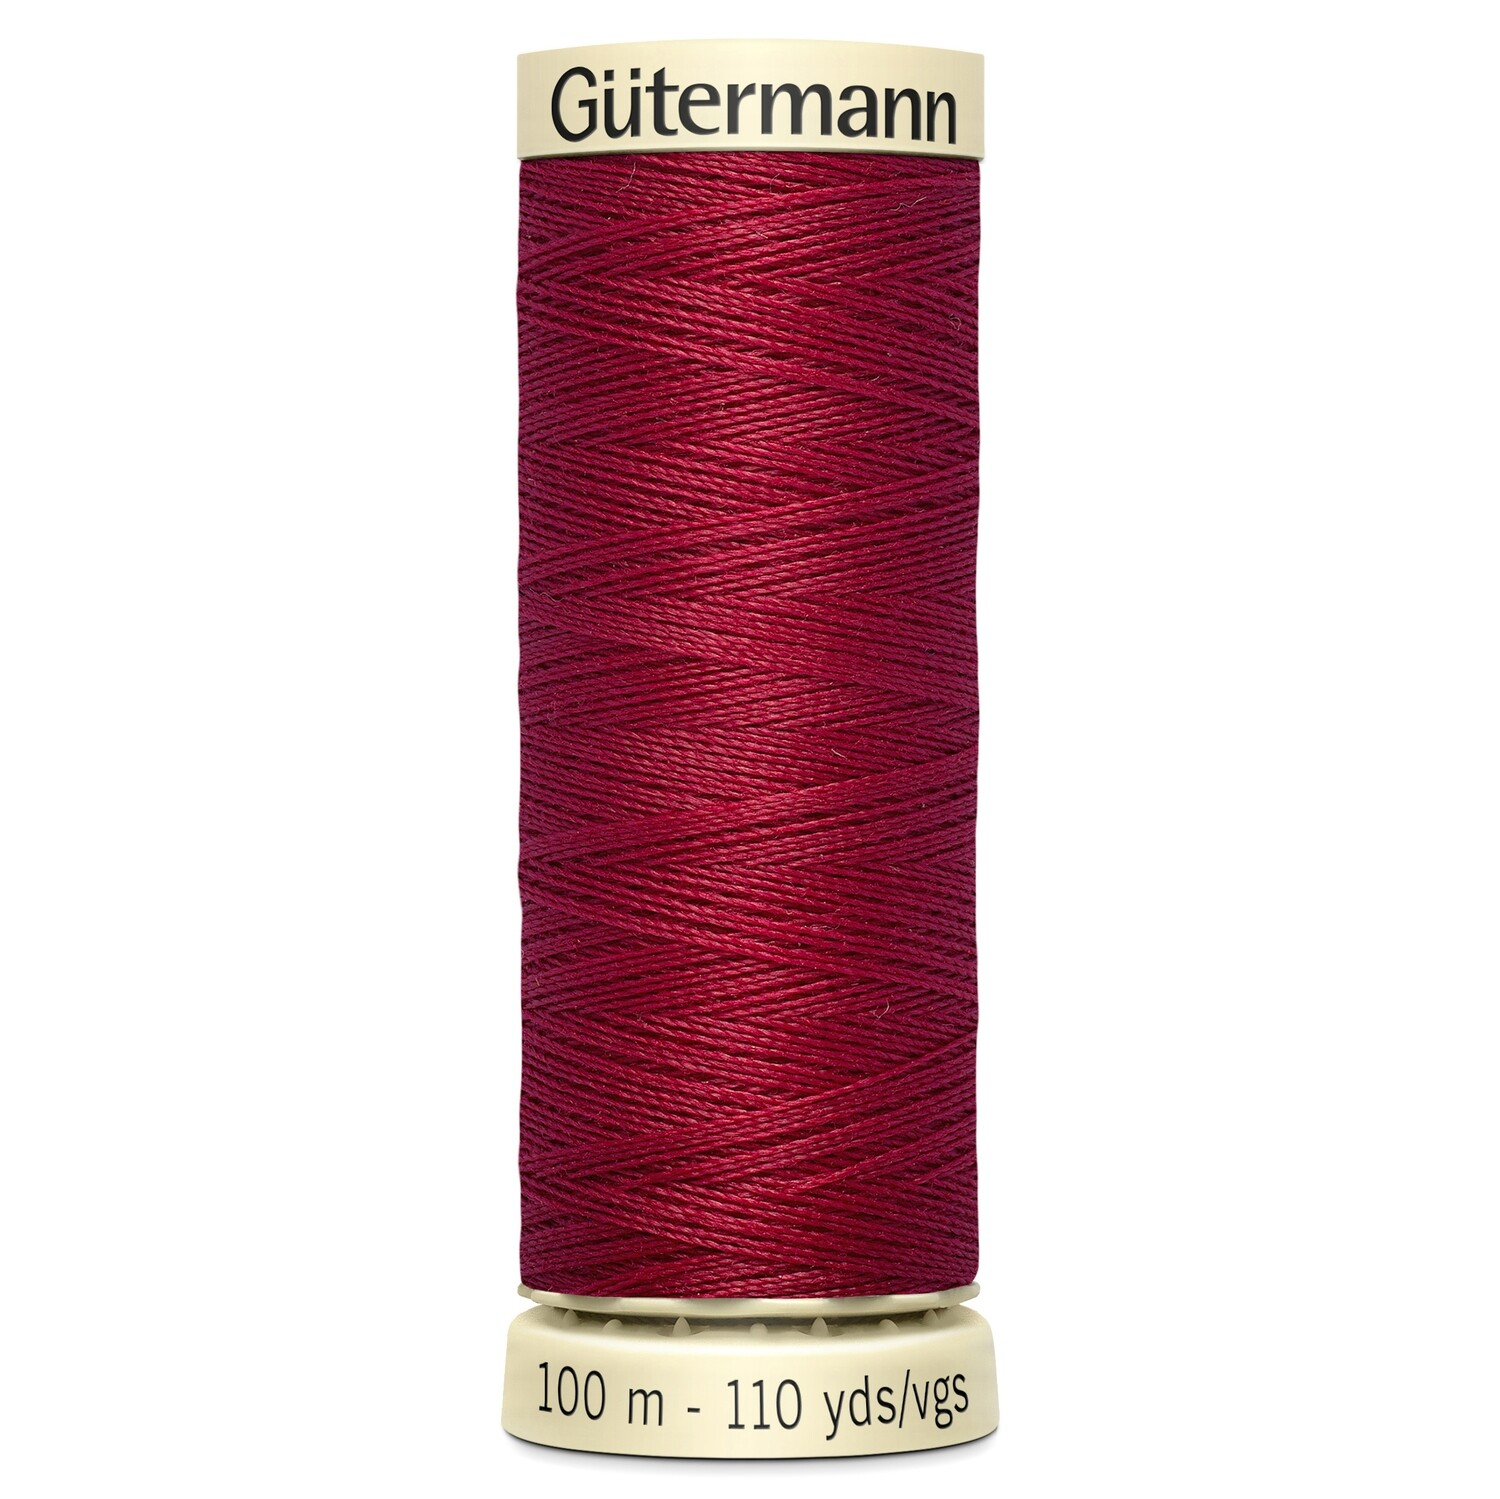 Gutermann Sew-All thread 384